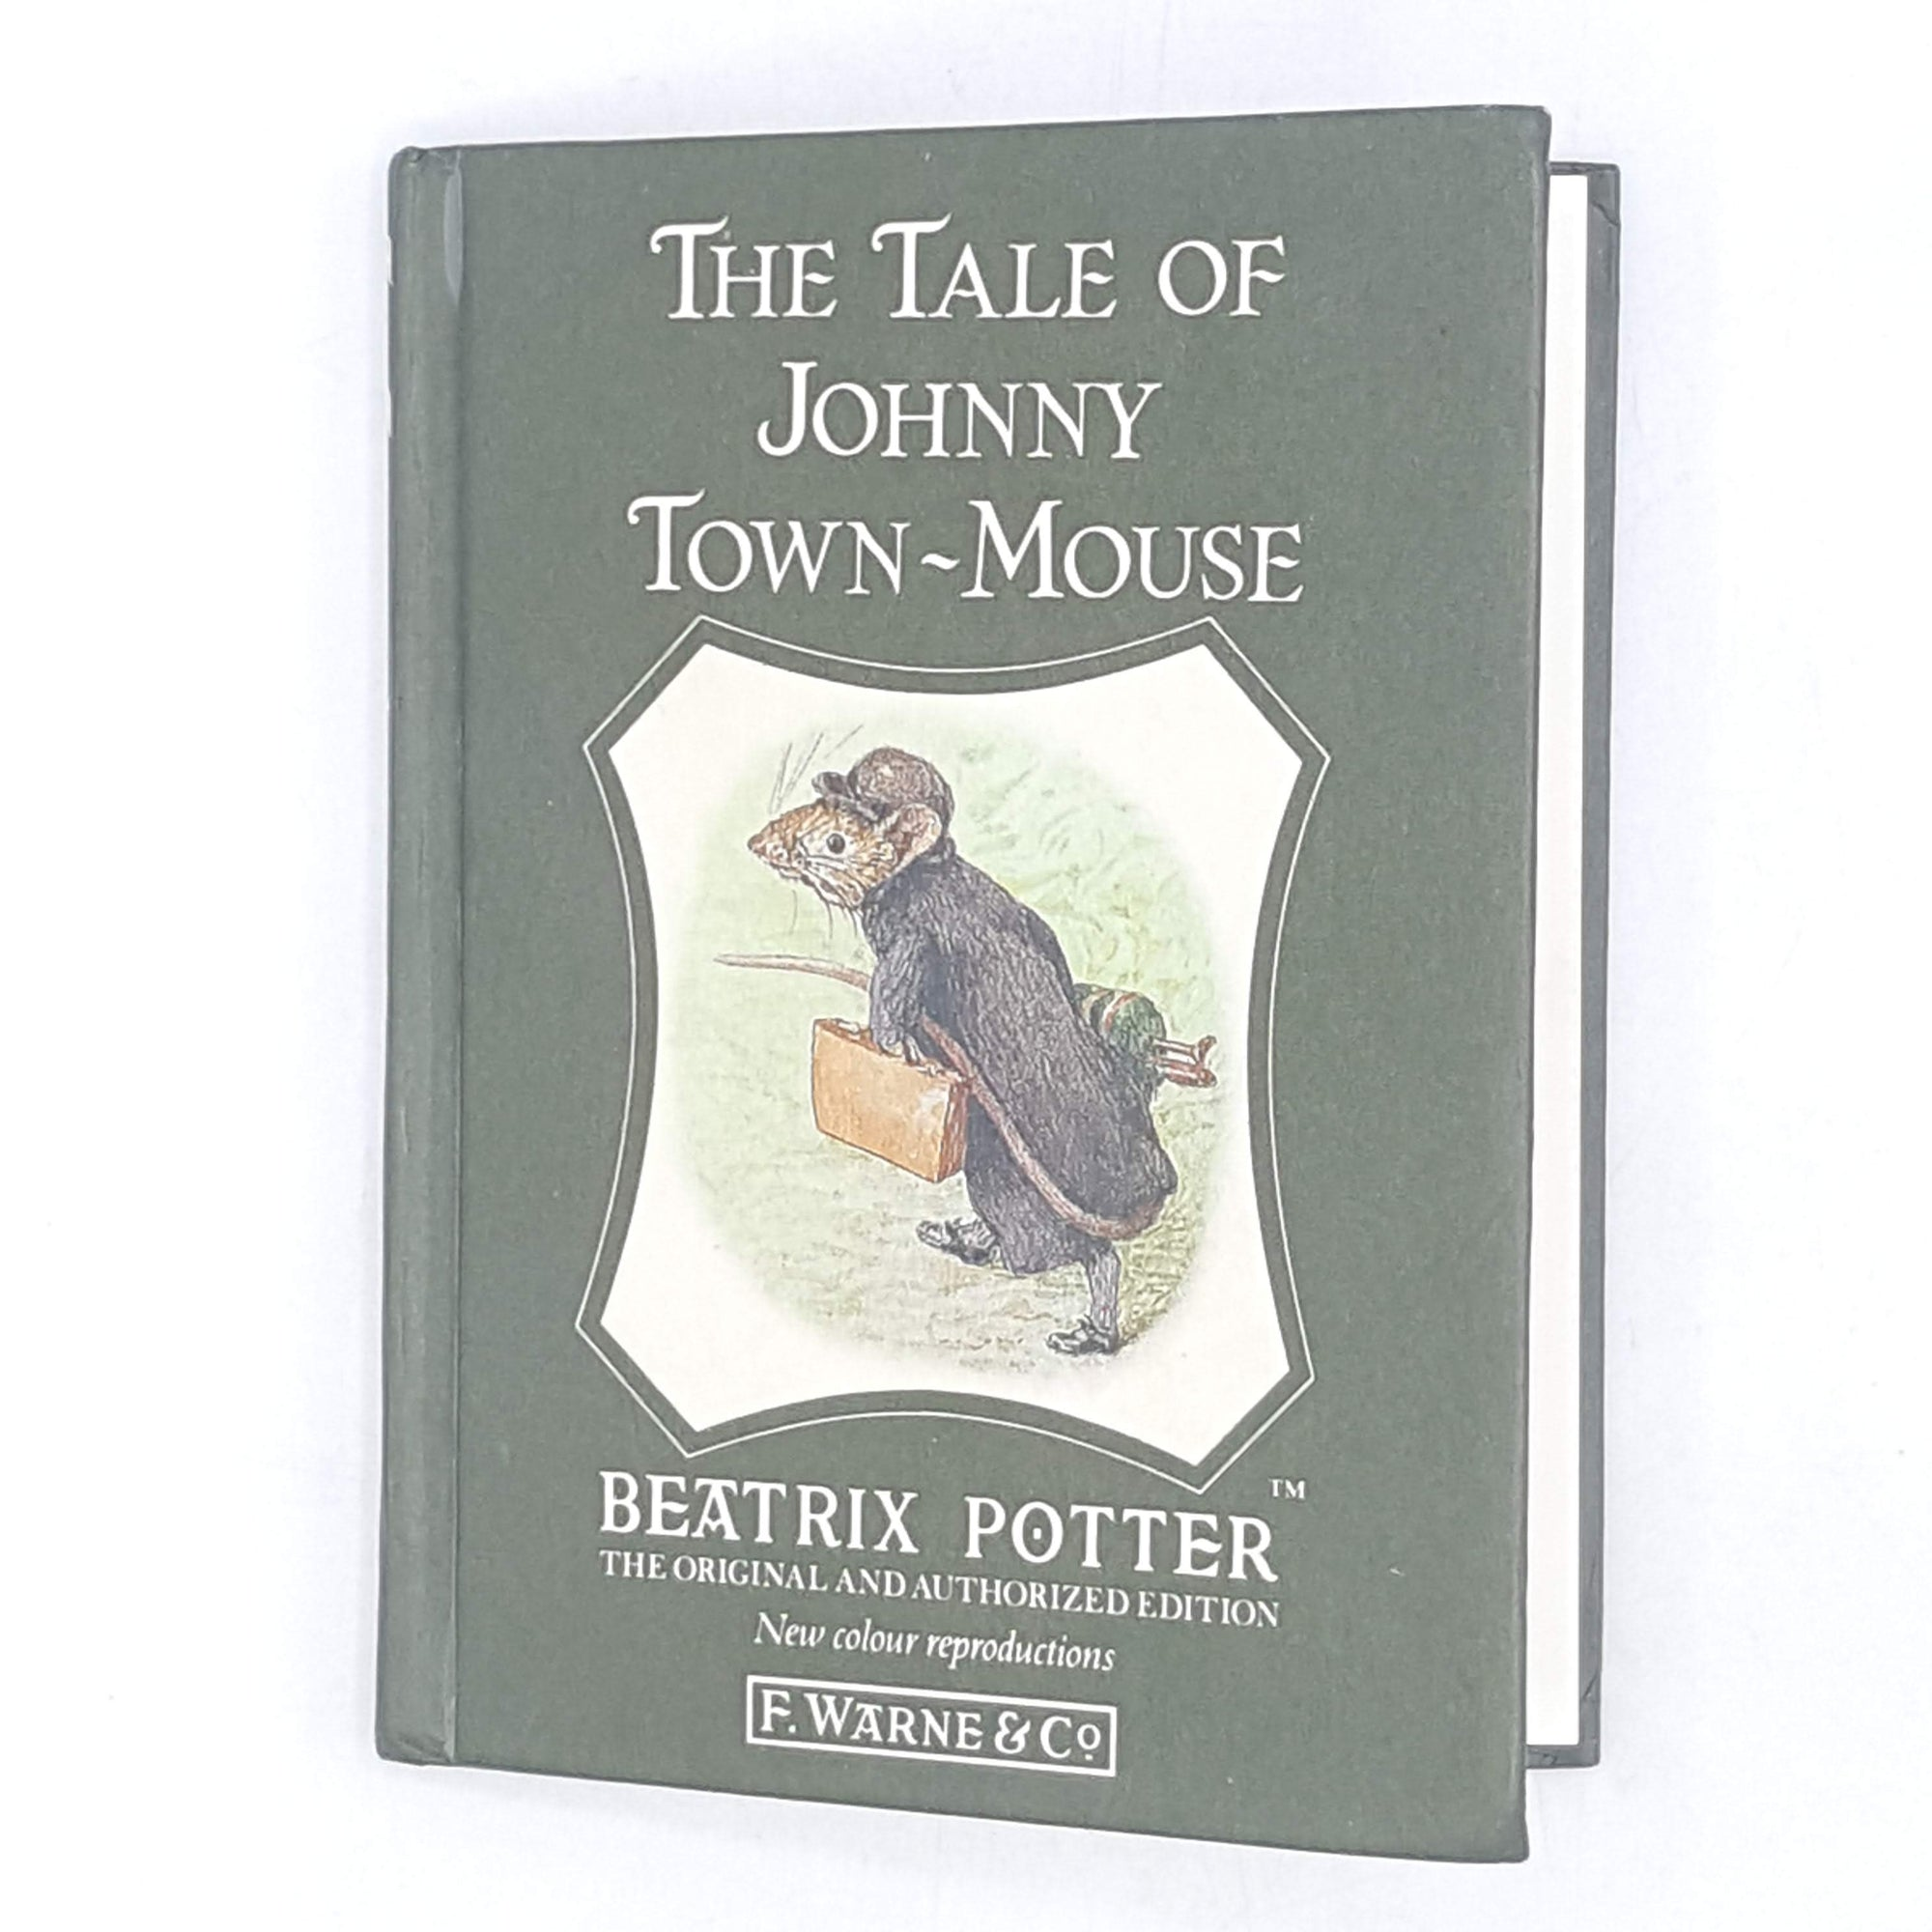 Beatrix Potter's The Tale of Johnny Town-Mouse